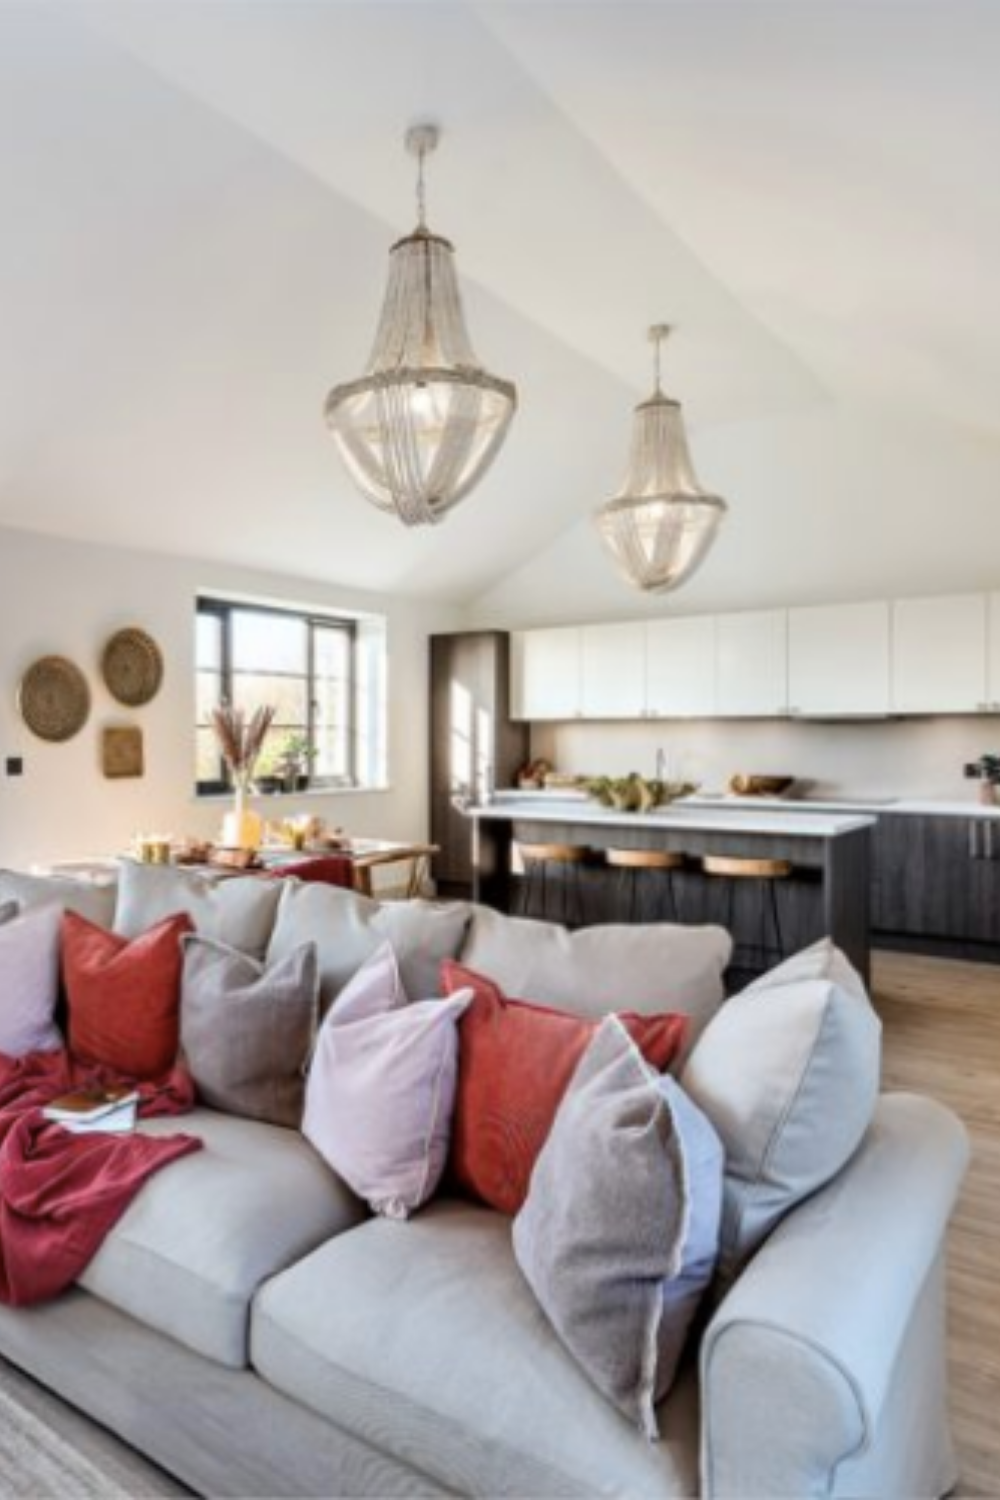 Discover the ideas behind Biophilic design with designer Angela Cheung. Natural colours, textures and materials are seen in the living room, bedroom and kitchen of this new build development #biophilicdesign #interiors #interiordesign #homedecor #decocafe